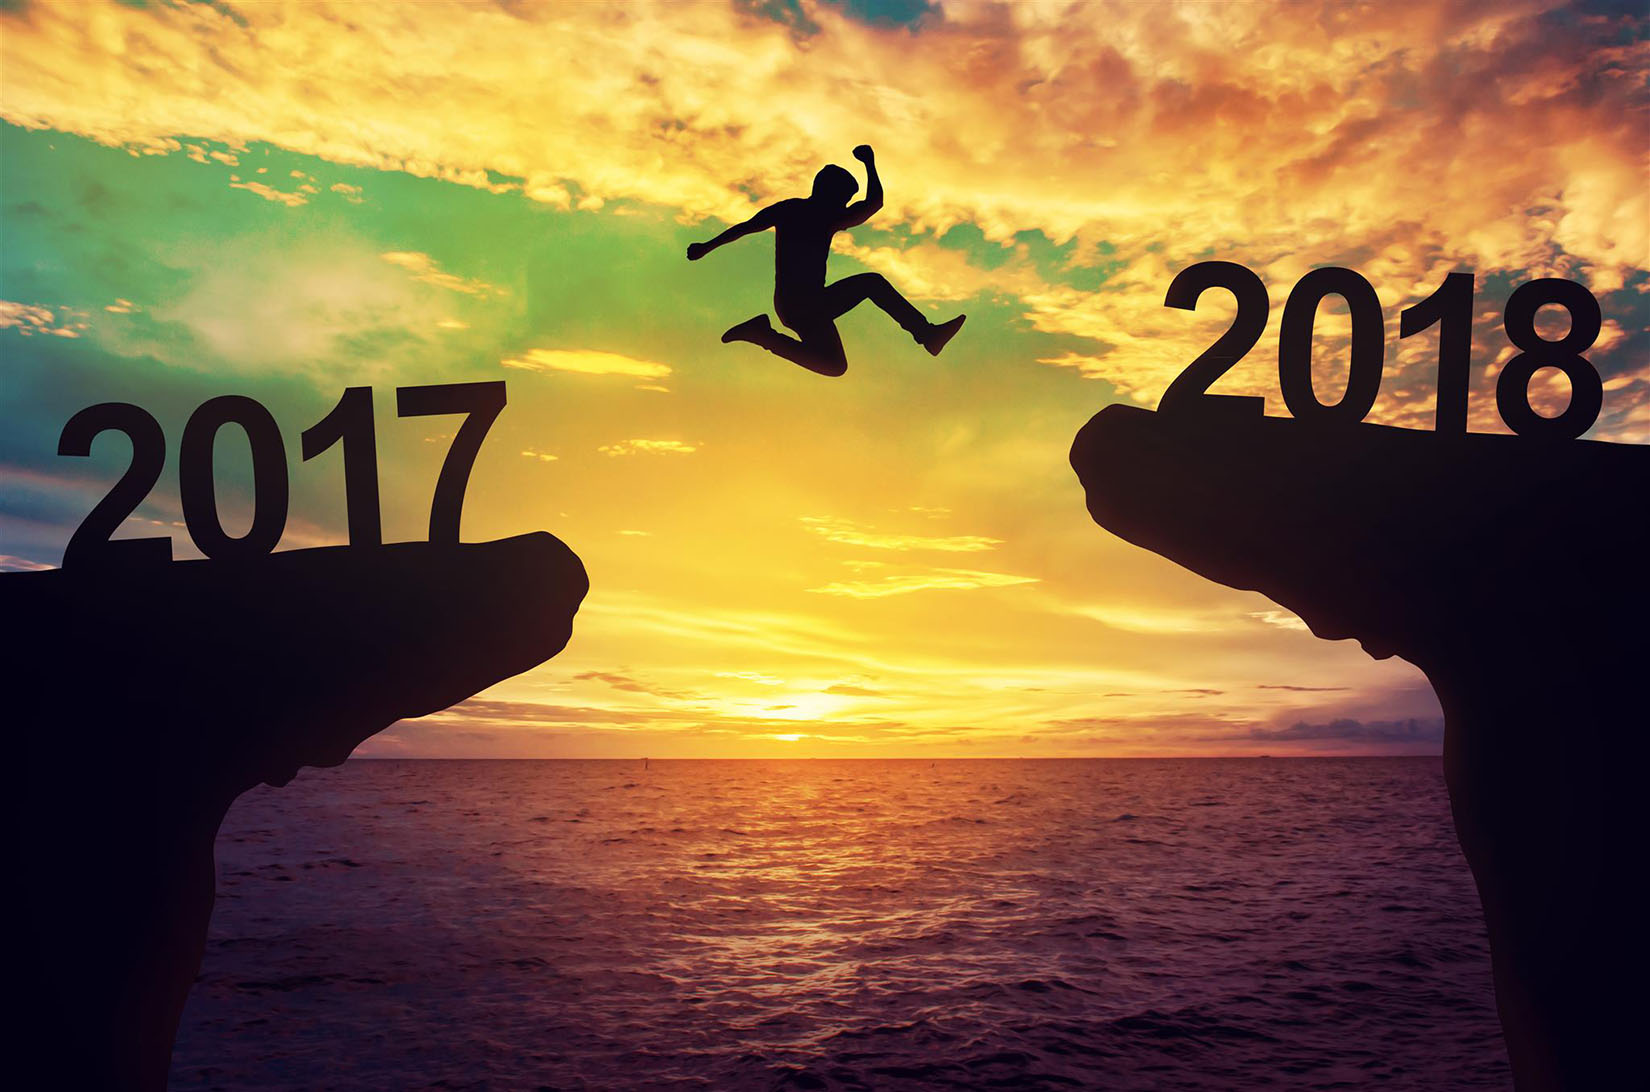 4 Things We Will Surely See in 2018